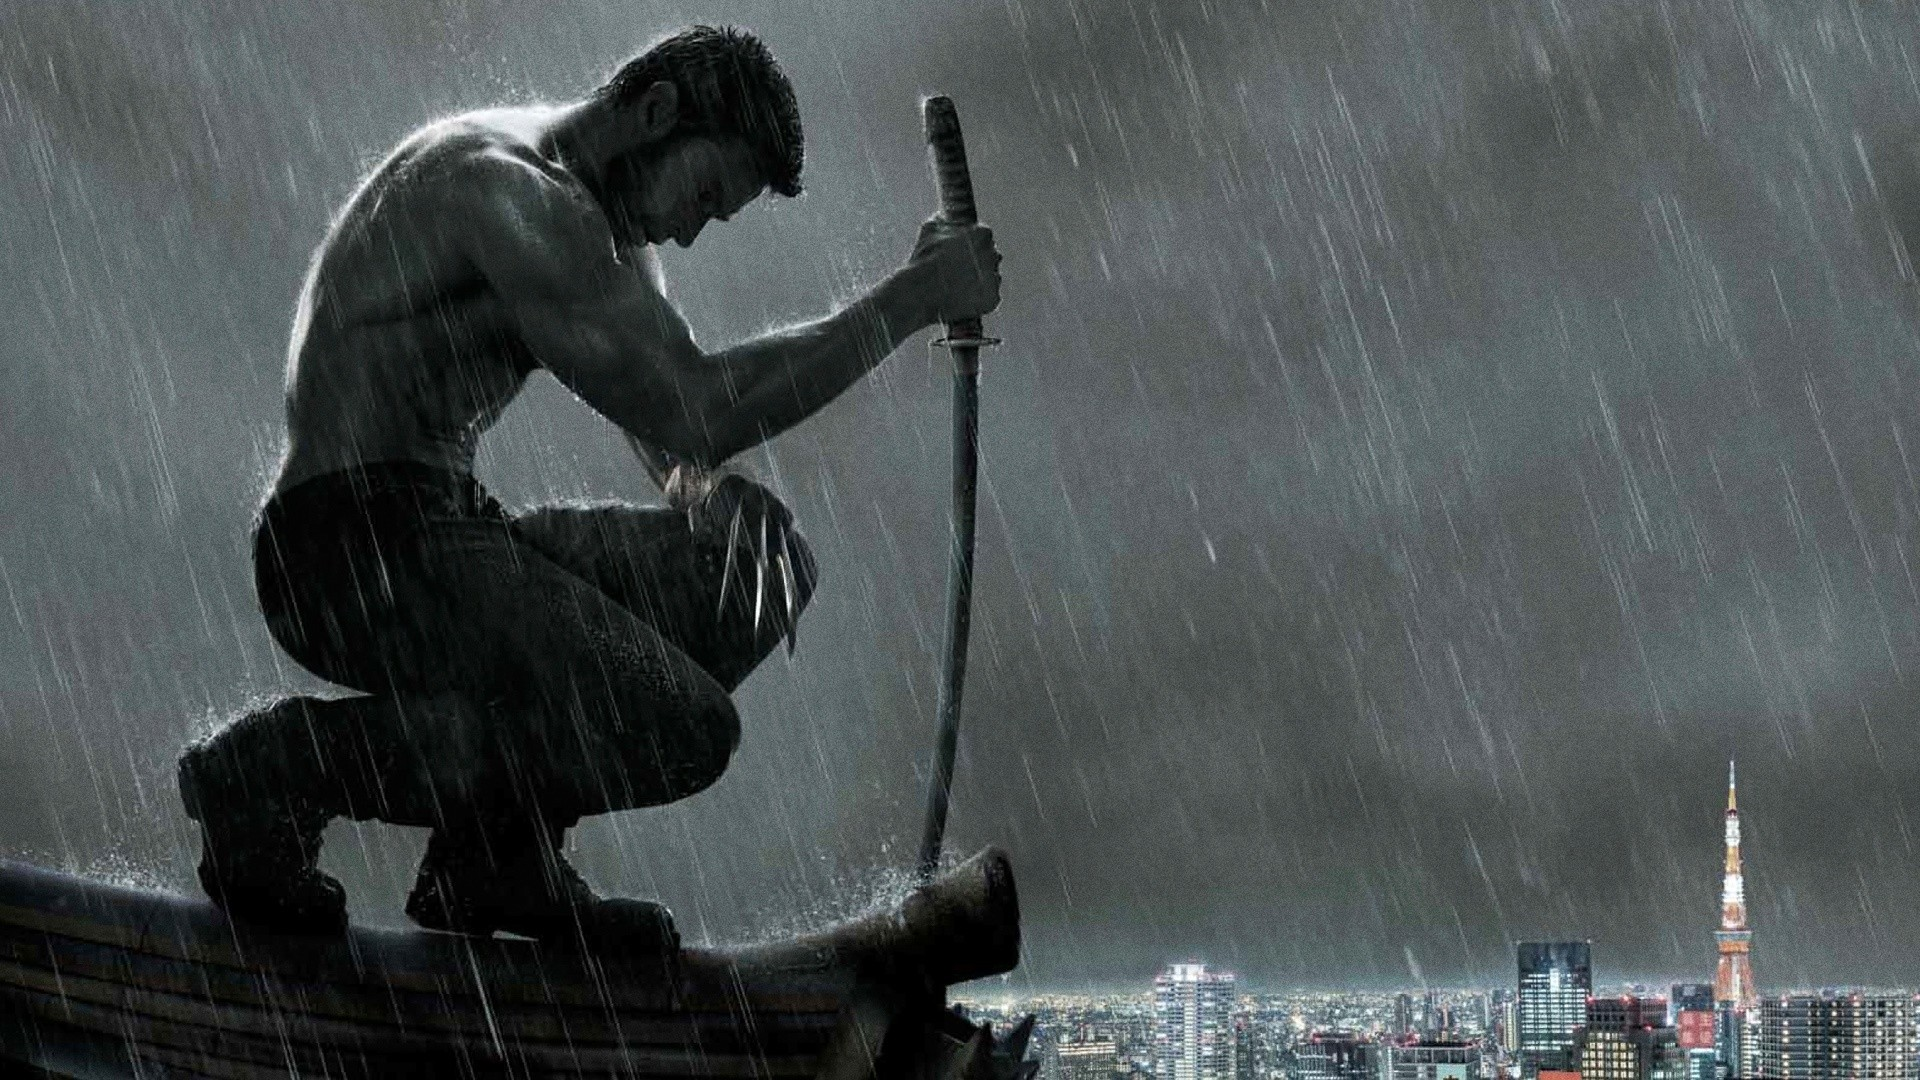 1920x1080 The Wolverine Movie #4152020, 1920x1200 | All For Desktop